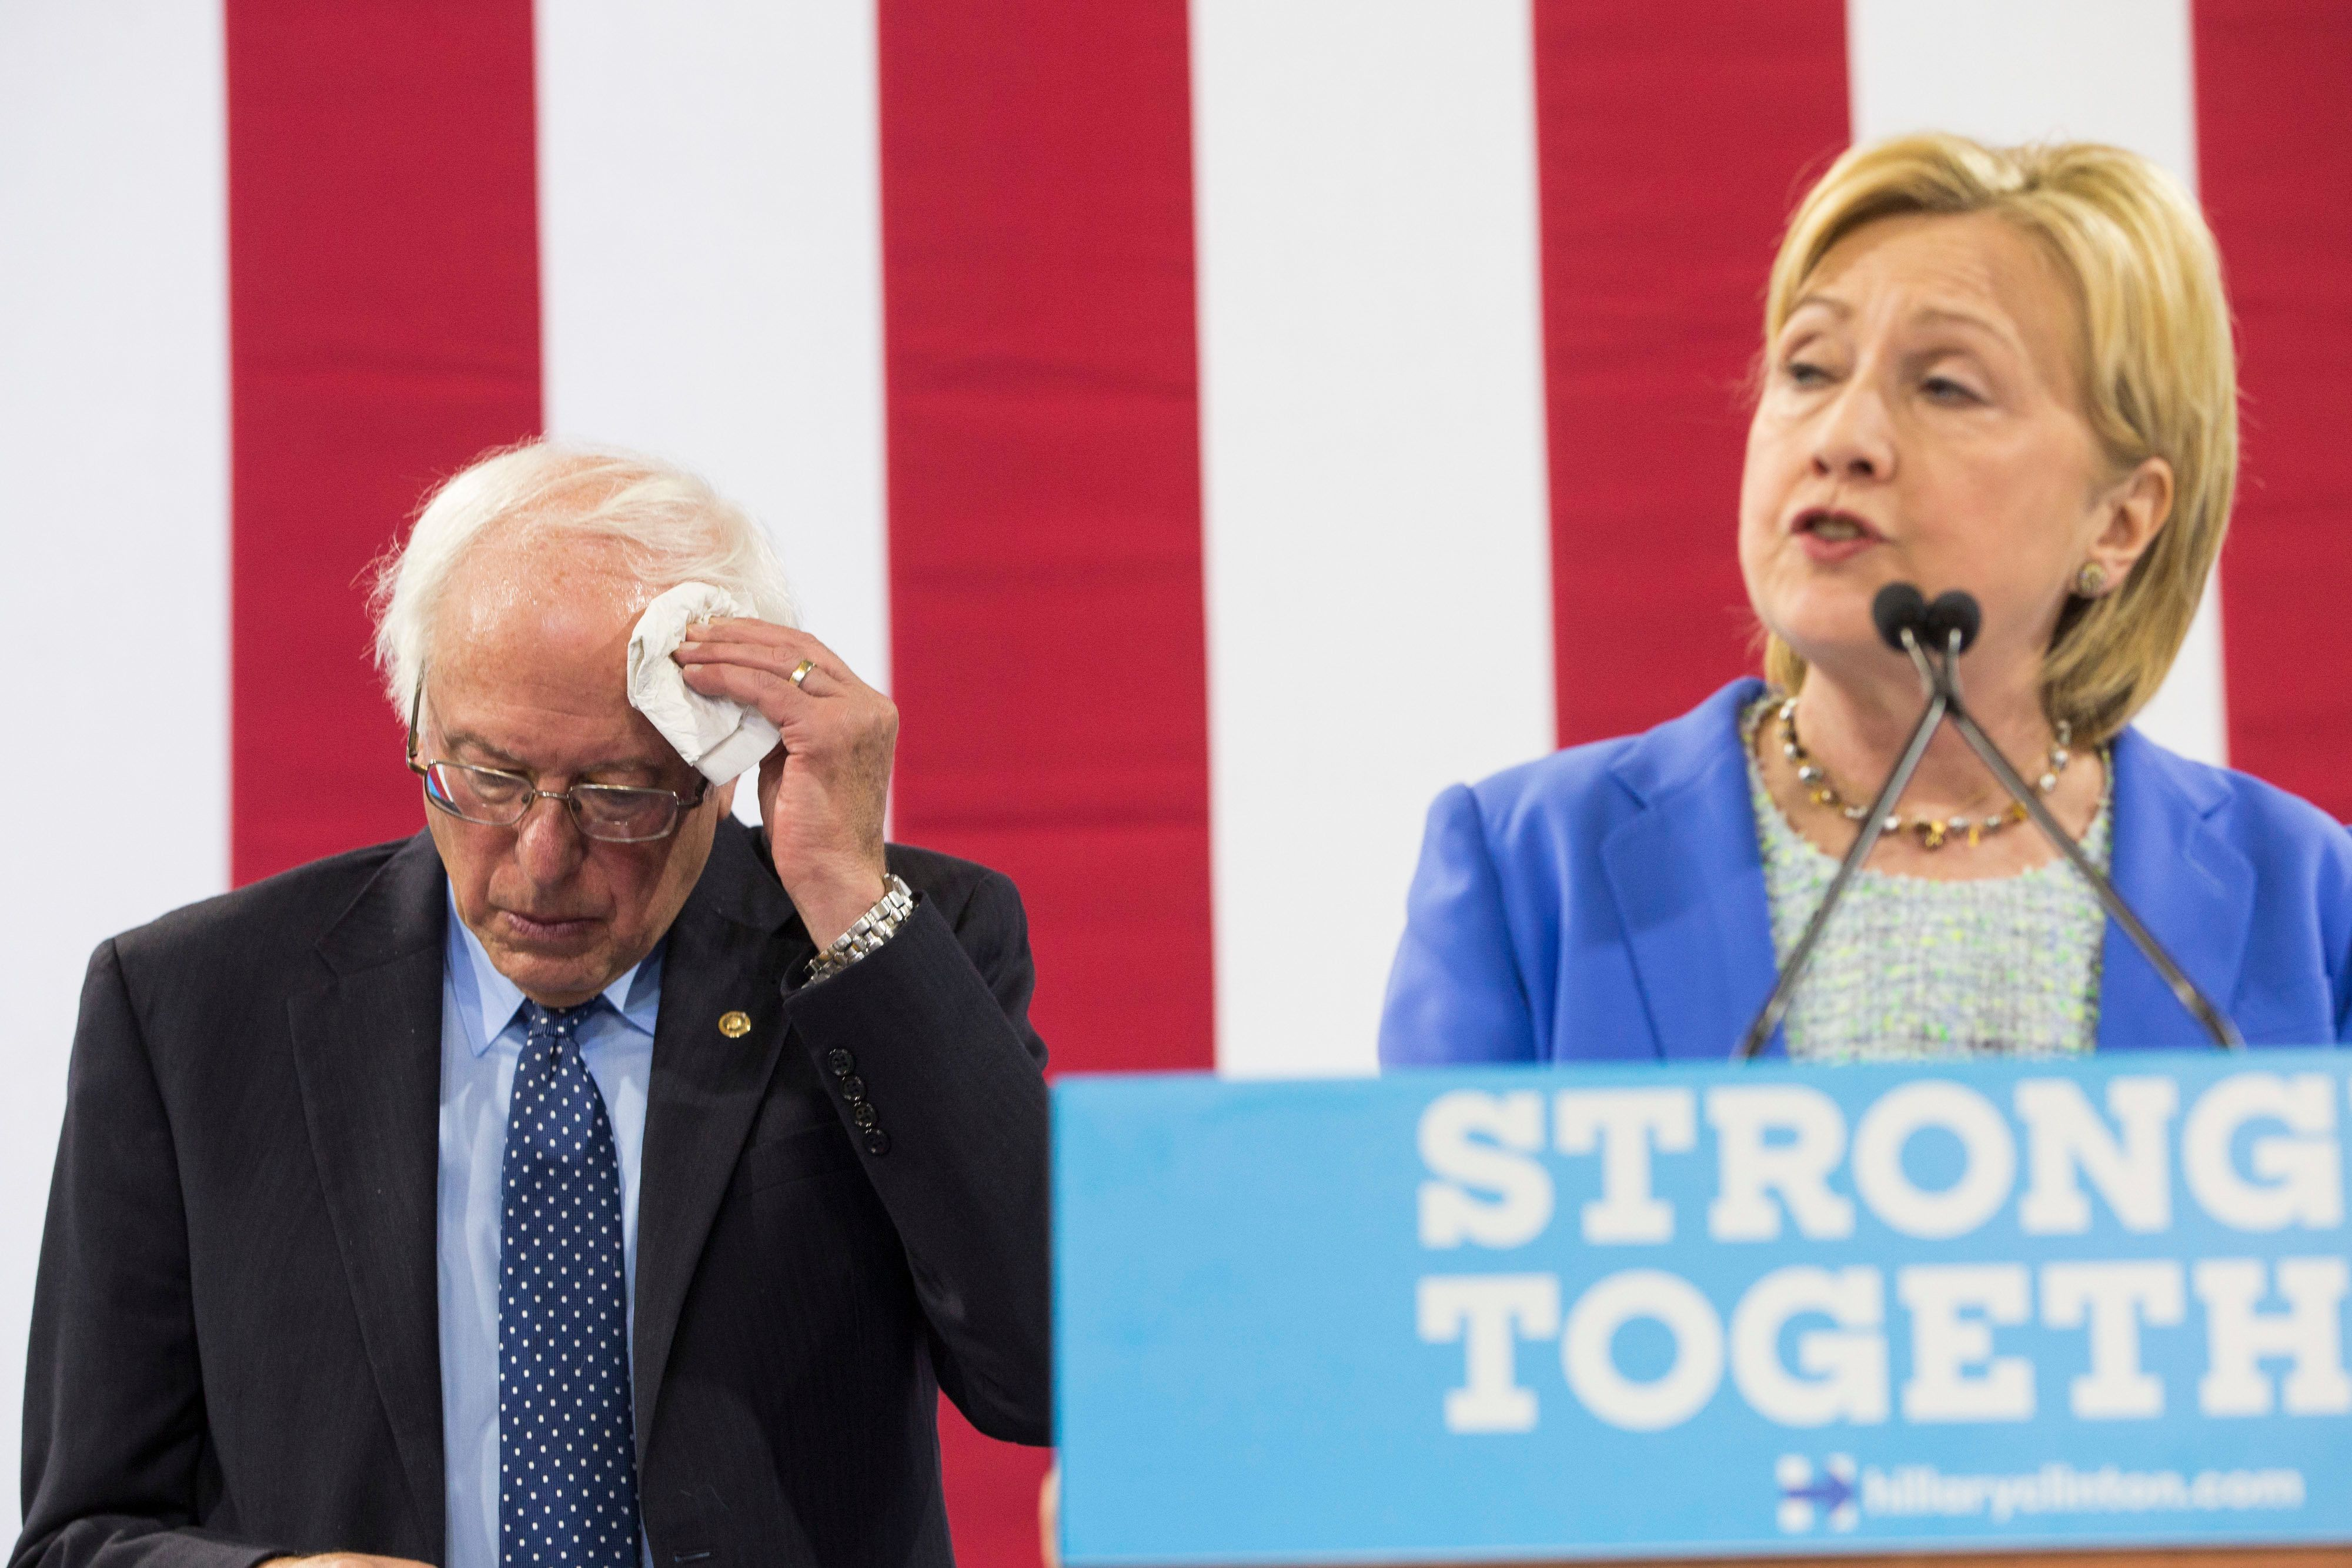 PORTSMOUTH, NH - JULY 12:  U.S. Senator and former presidential candidate Bernie Sanders wipes his forehead  as U.S. Democratic Presidential candidate Hillary Clinton speaks at a campaign event where Sanders endorsed Clinton in Portsmouth, N.H., July 12, 2016. (Photo by Keith Bedford/The Boston Globe via Getty Images)